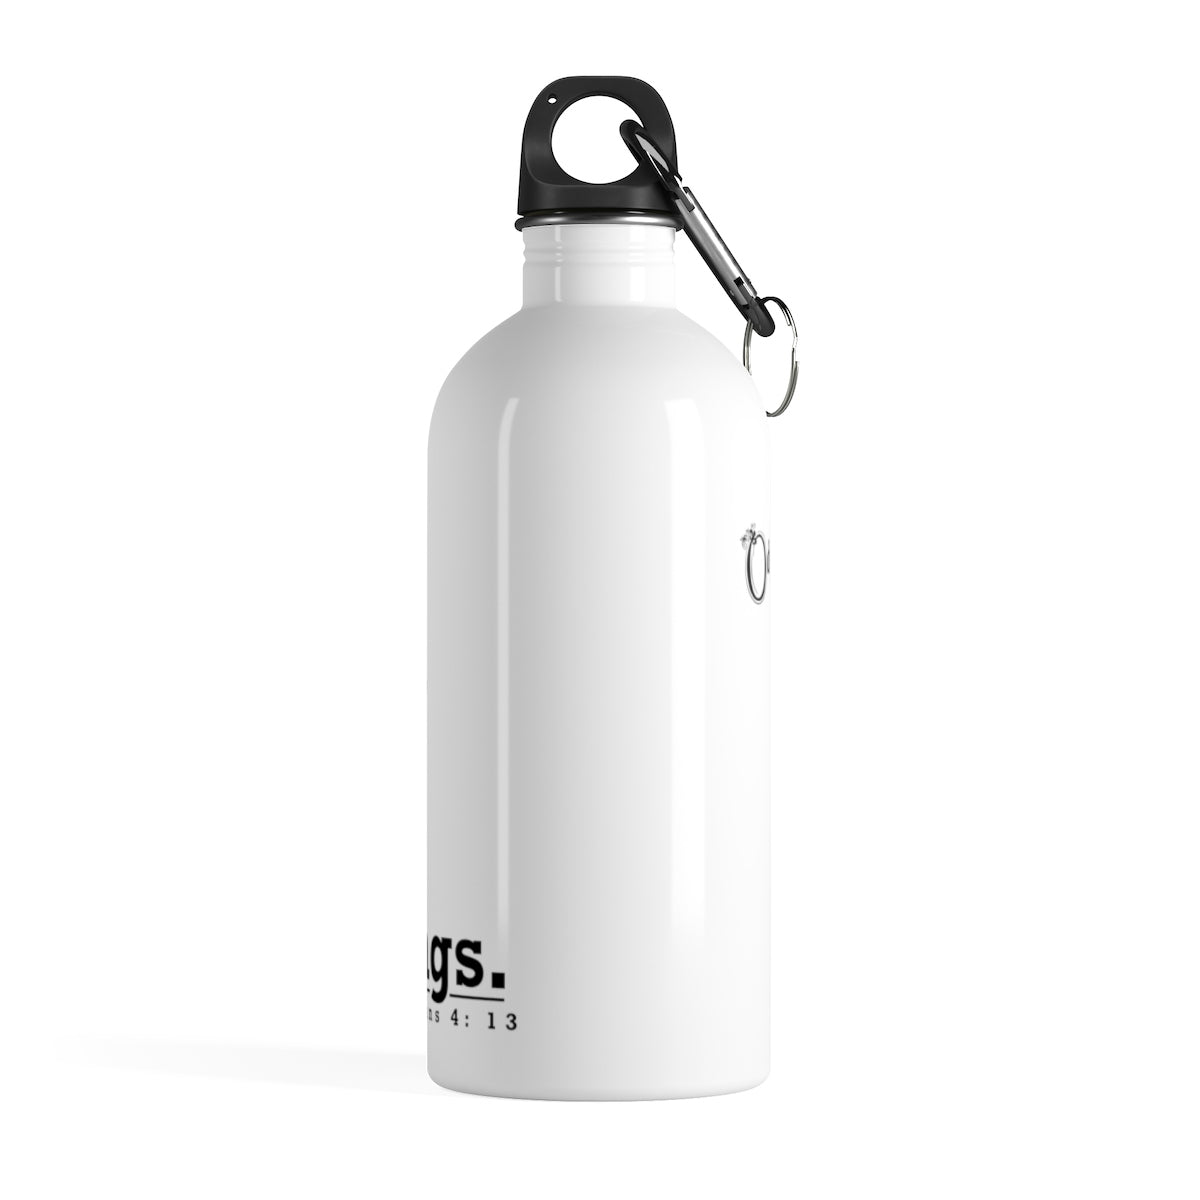 Odyssey I Can Do Stainless Steel Bottle - Mug - Odyssey By Yendi